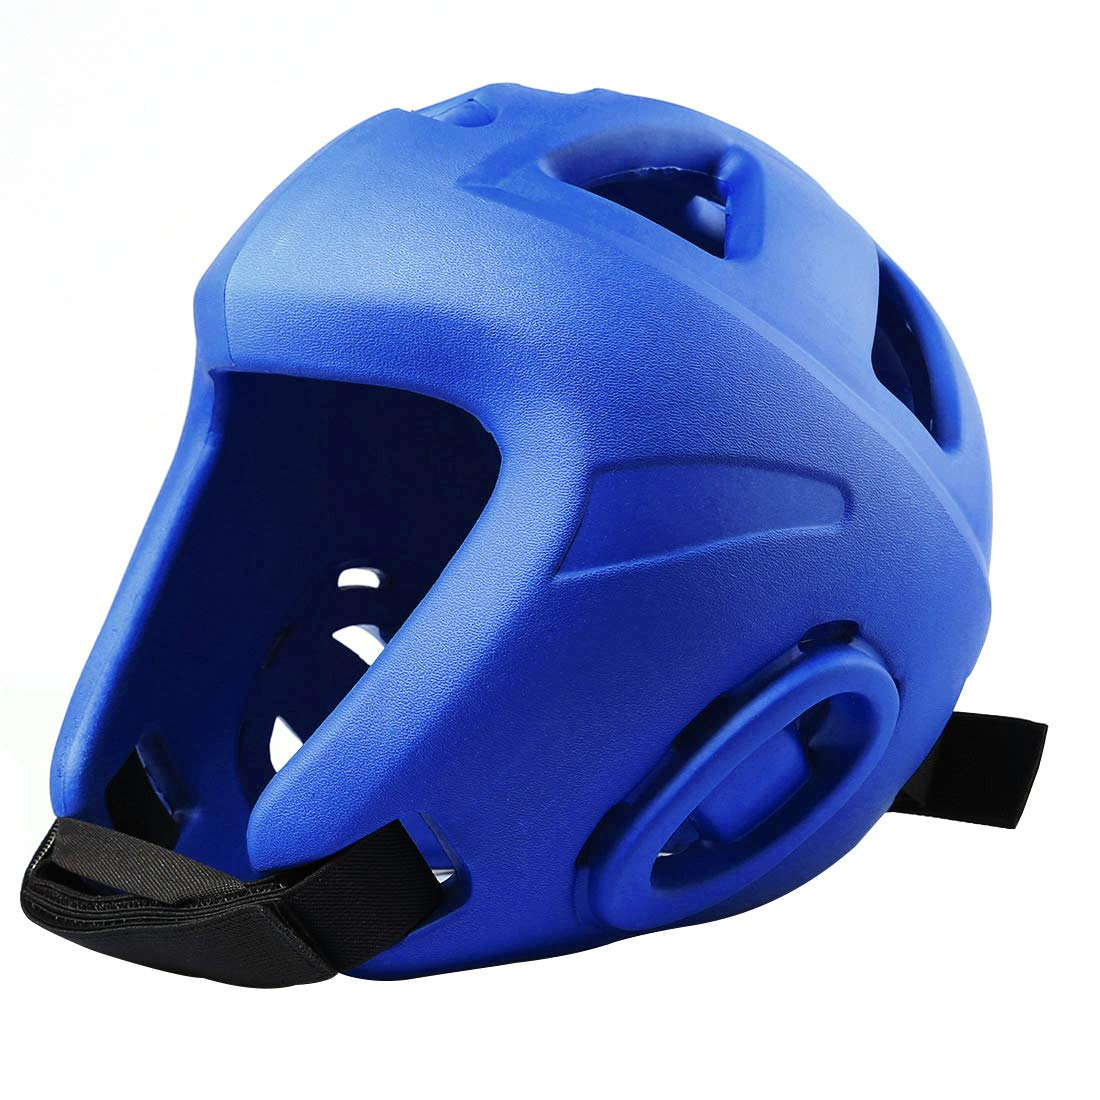 Haoun Head Protection Helmet, EVA Boxing Headgear MMA Protector UFC Fighting Helmet - Blue,M